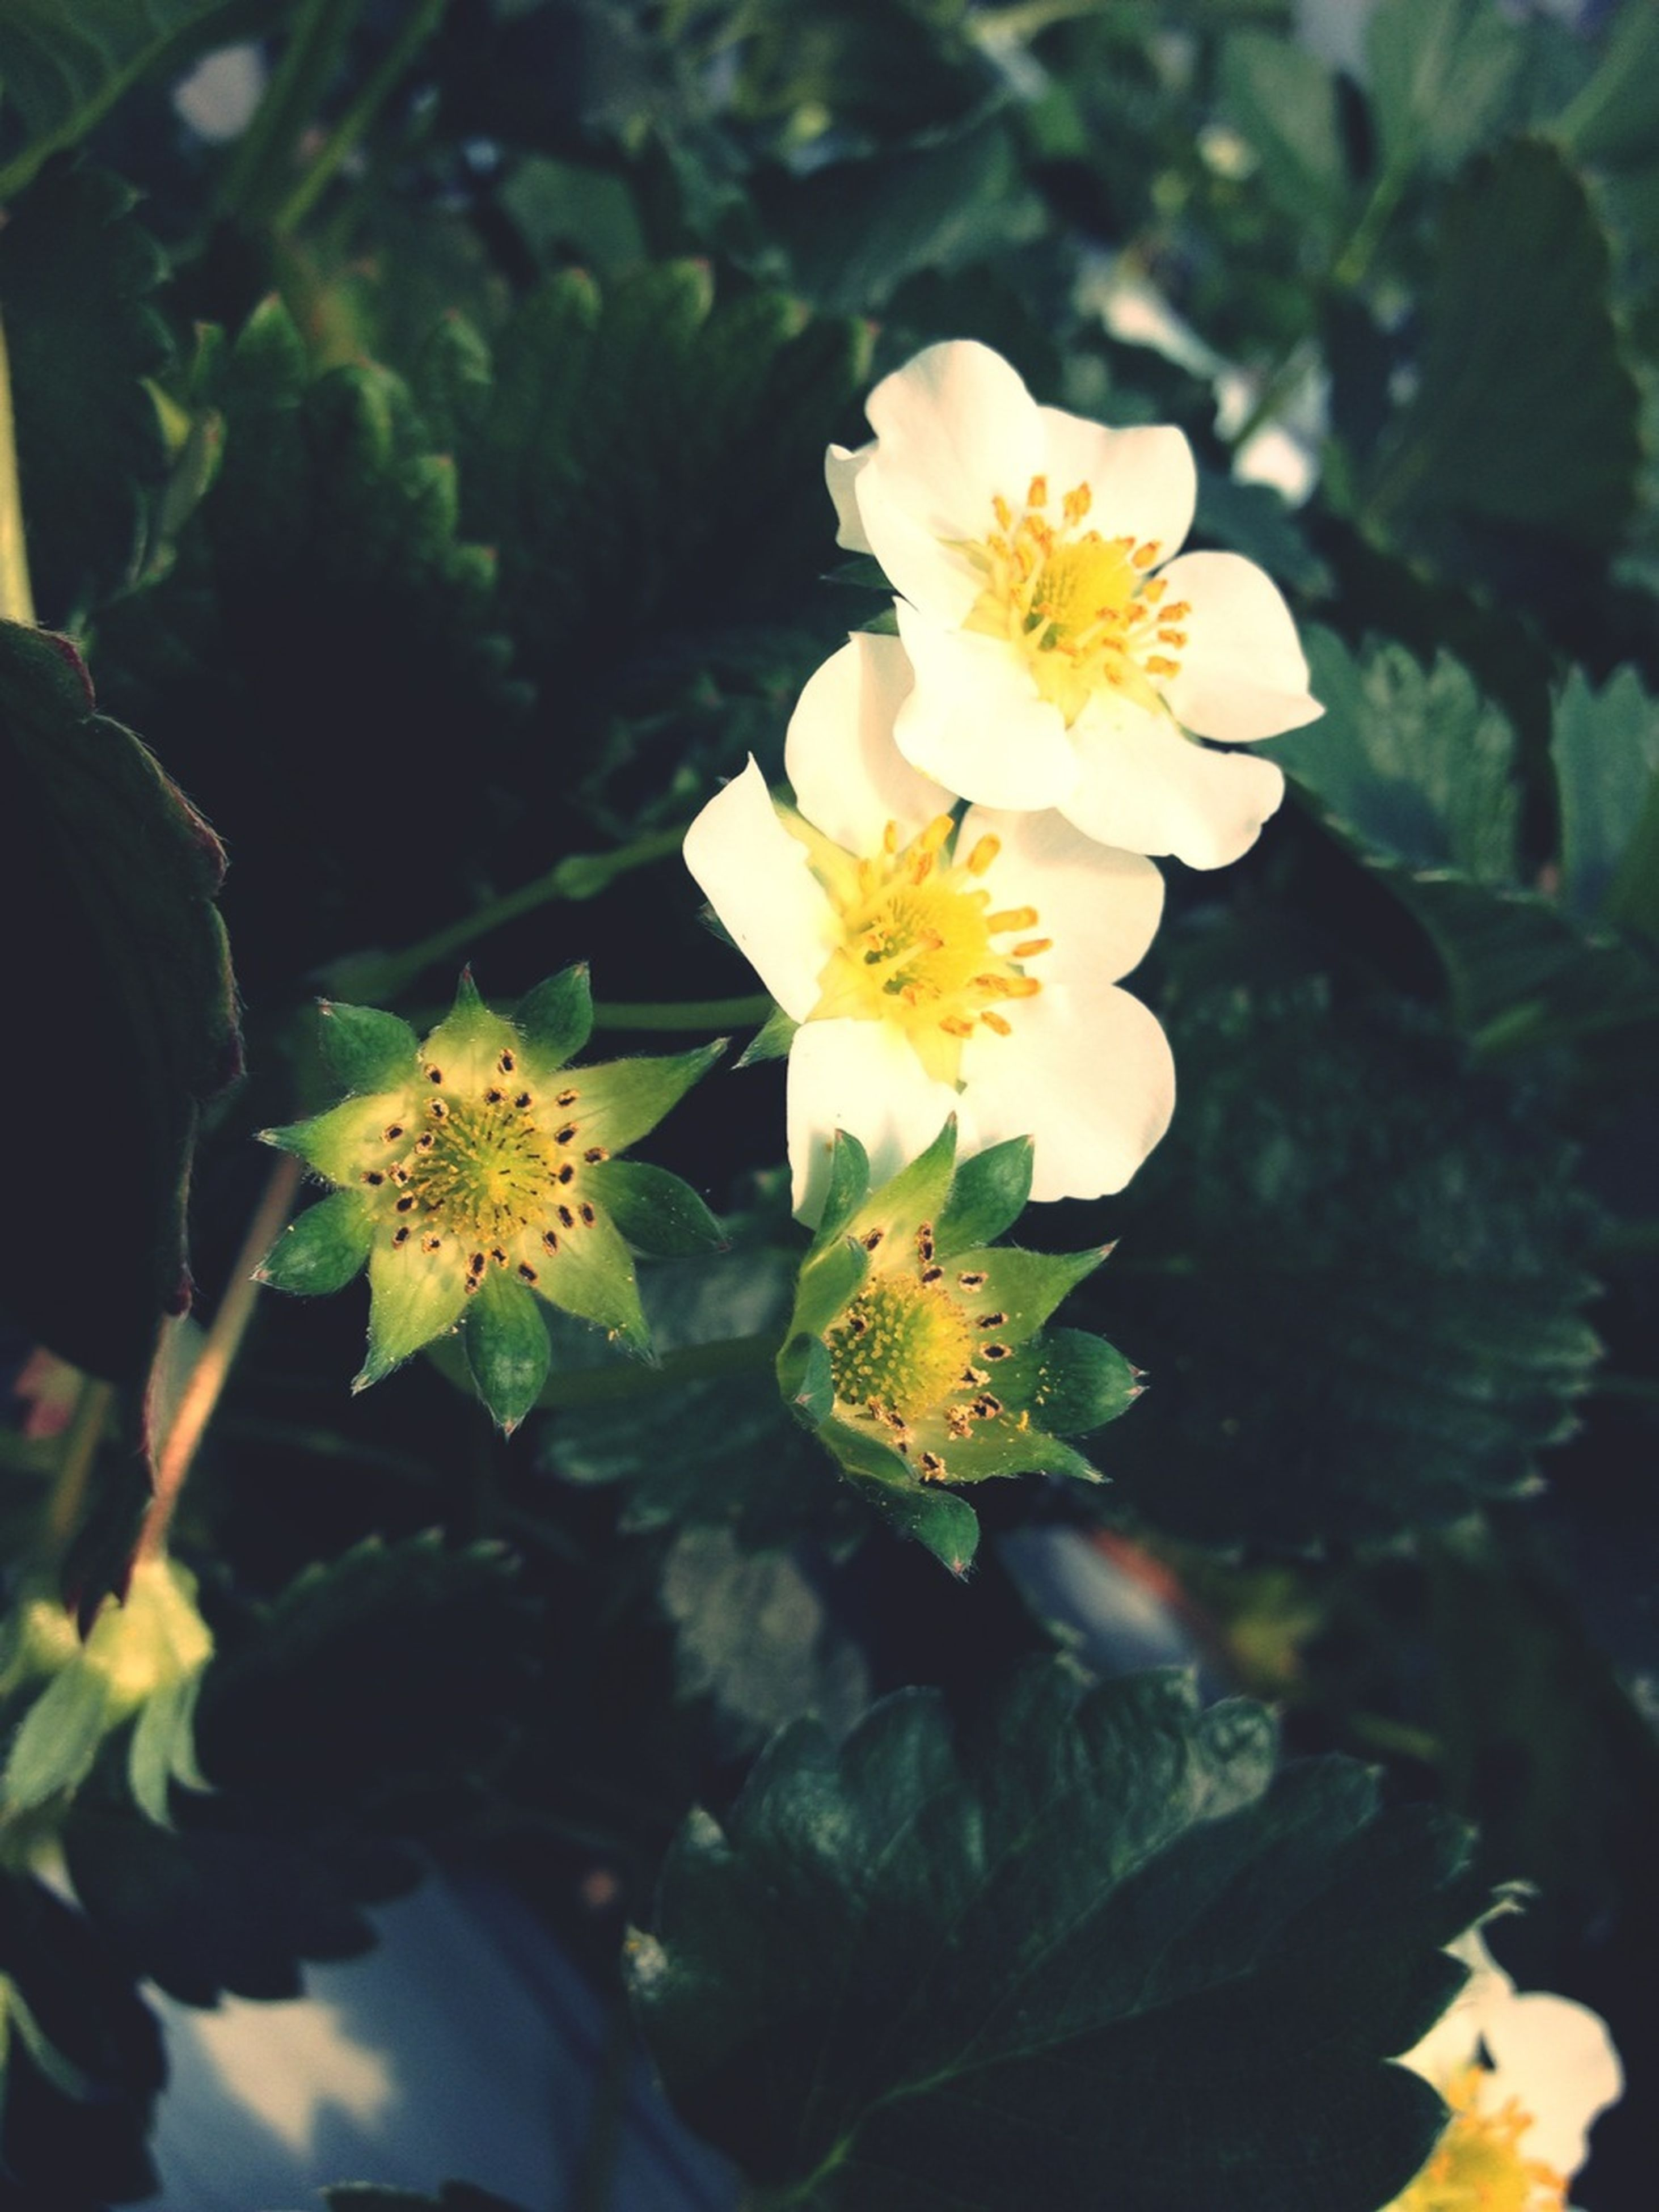 flower, petal, freshness, flower head, fragility, yellow, beauty in nature, growth, blooming, plant, close-up, pollen, nature, white color, focus on foreground, leaf, in bloom, blossom, outdoors, day